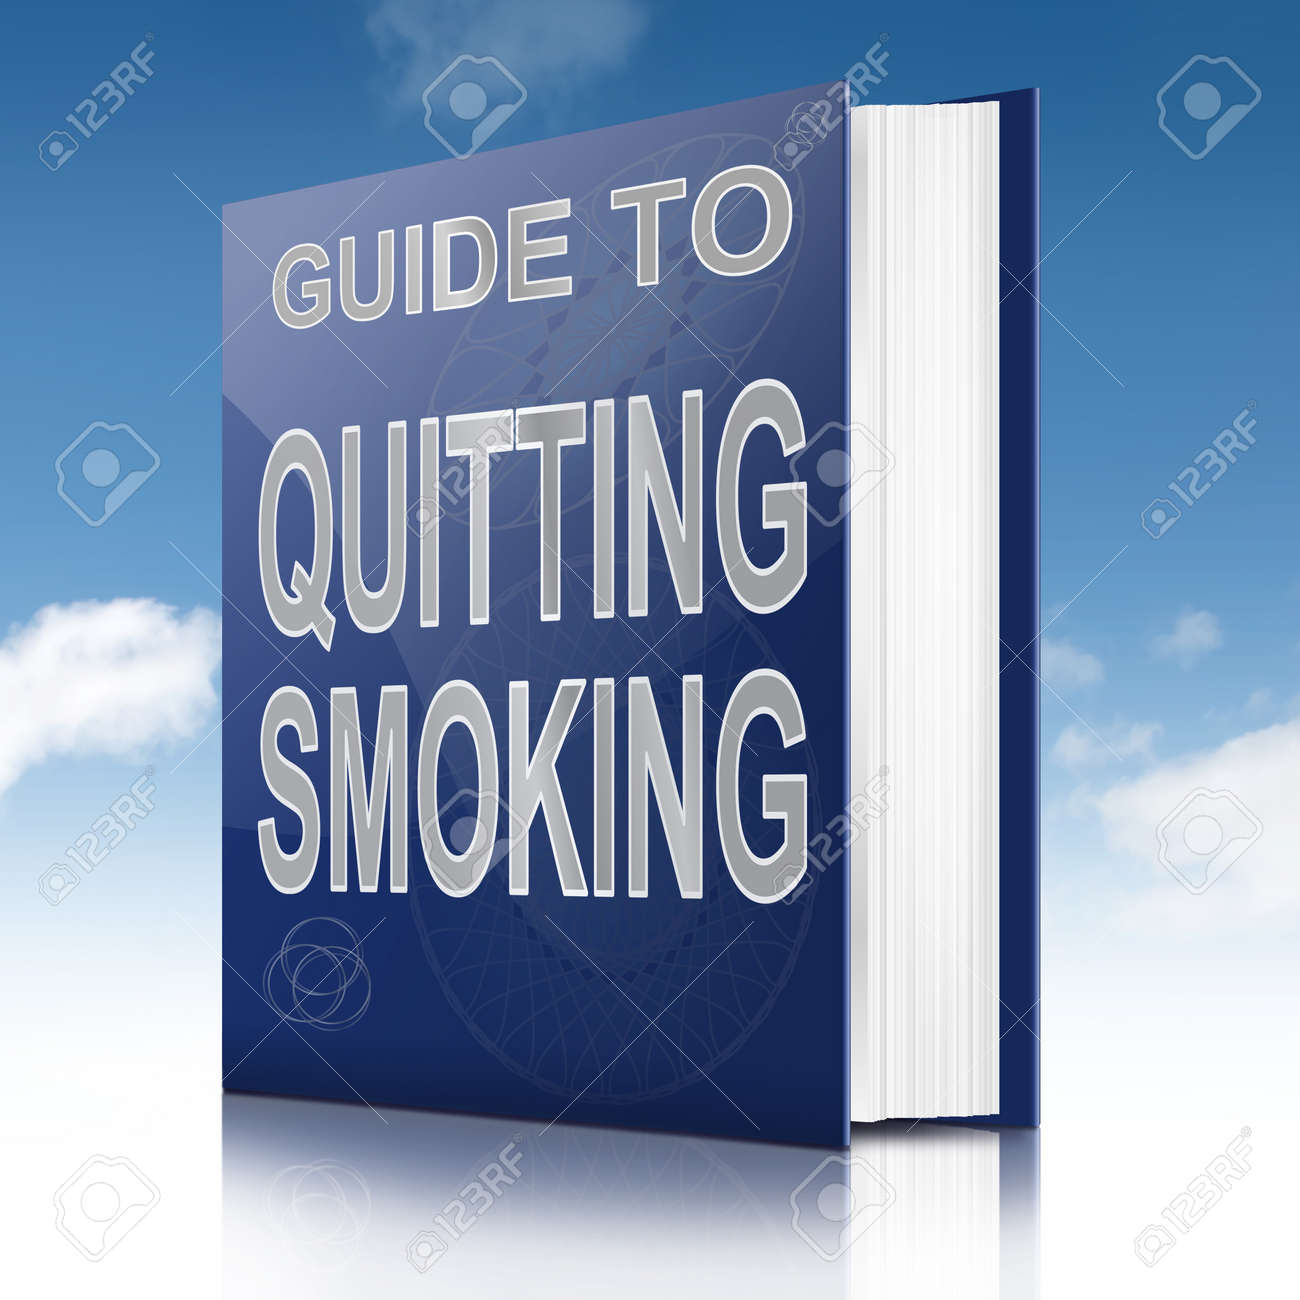 Illustration depicting a book with a quitting smoking concept title. Sky background. Stock Photo - 17223269